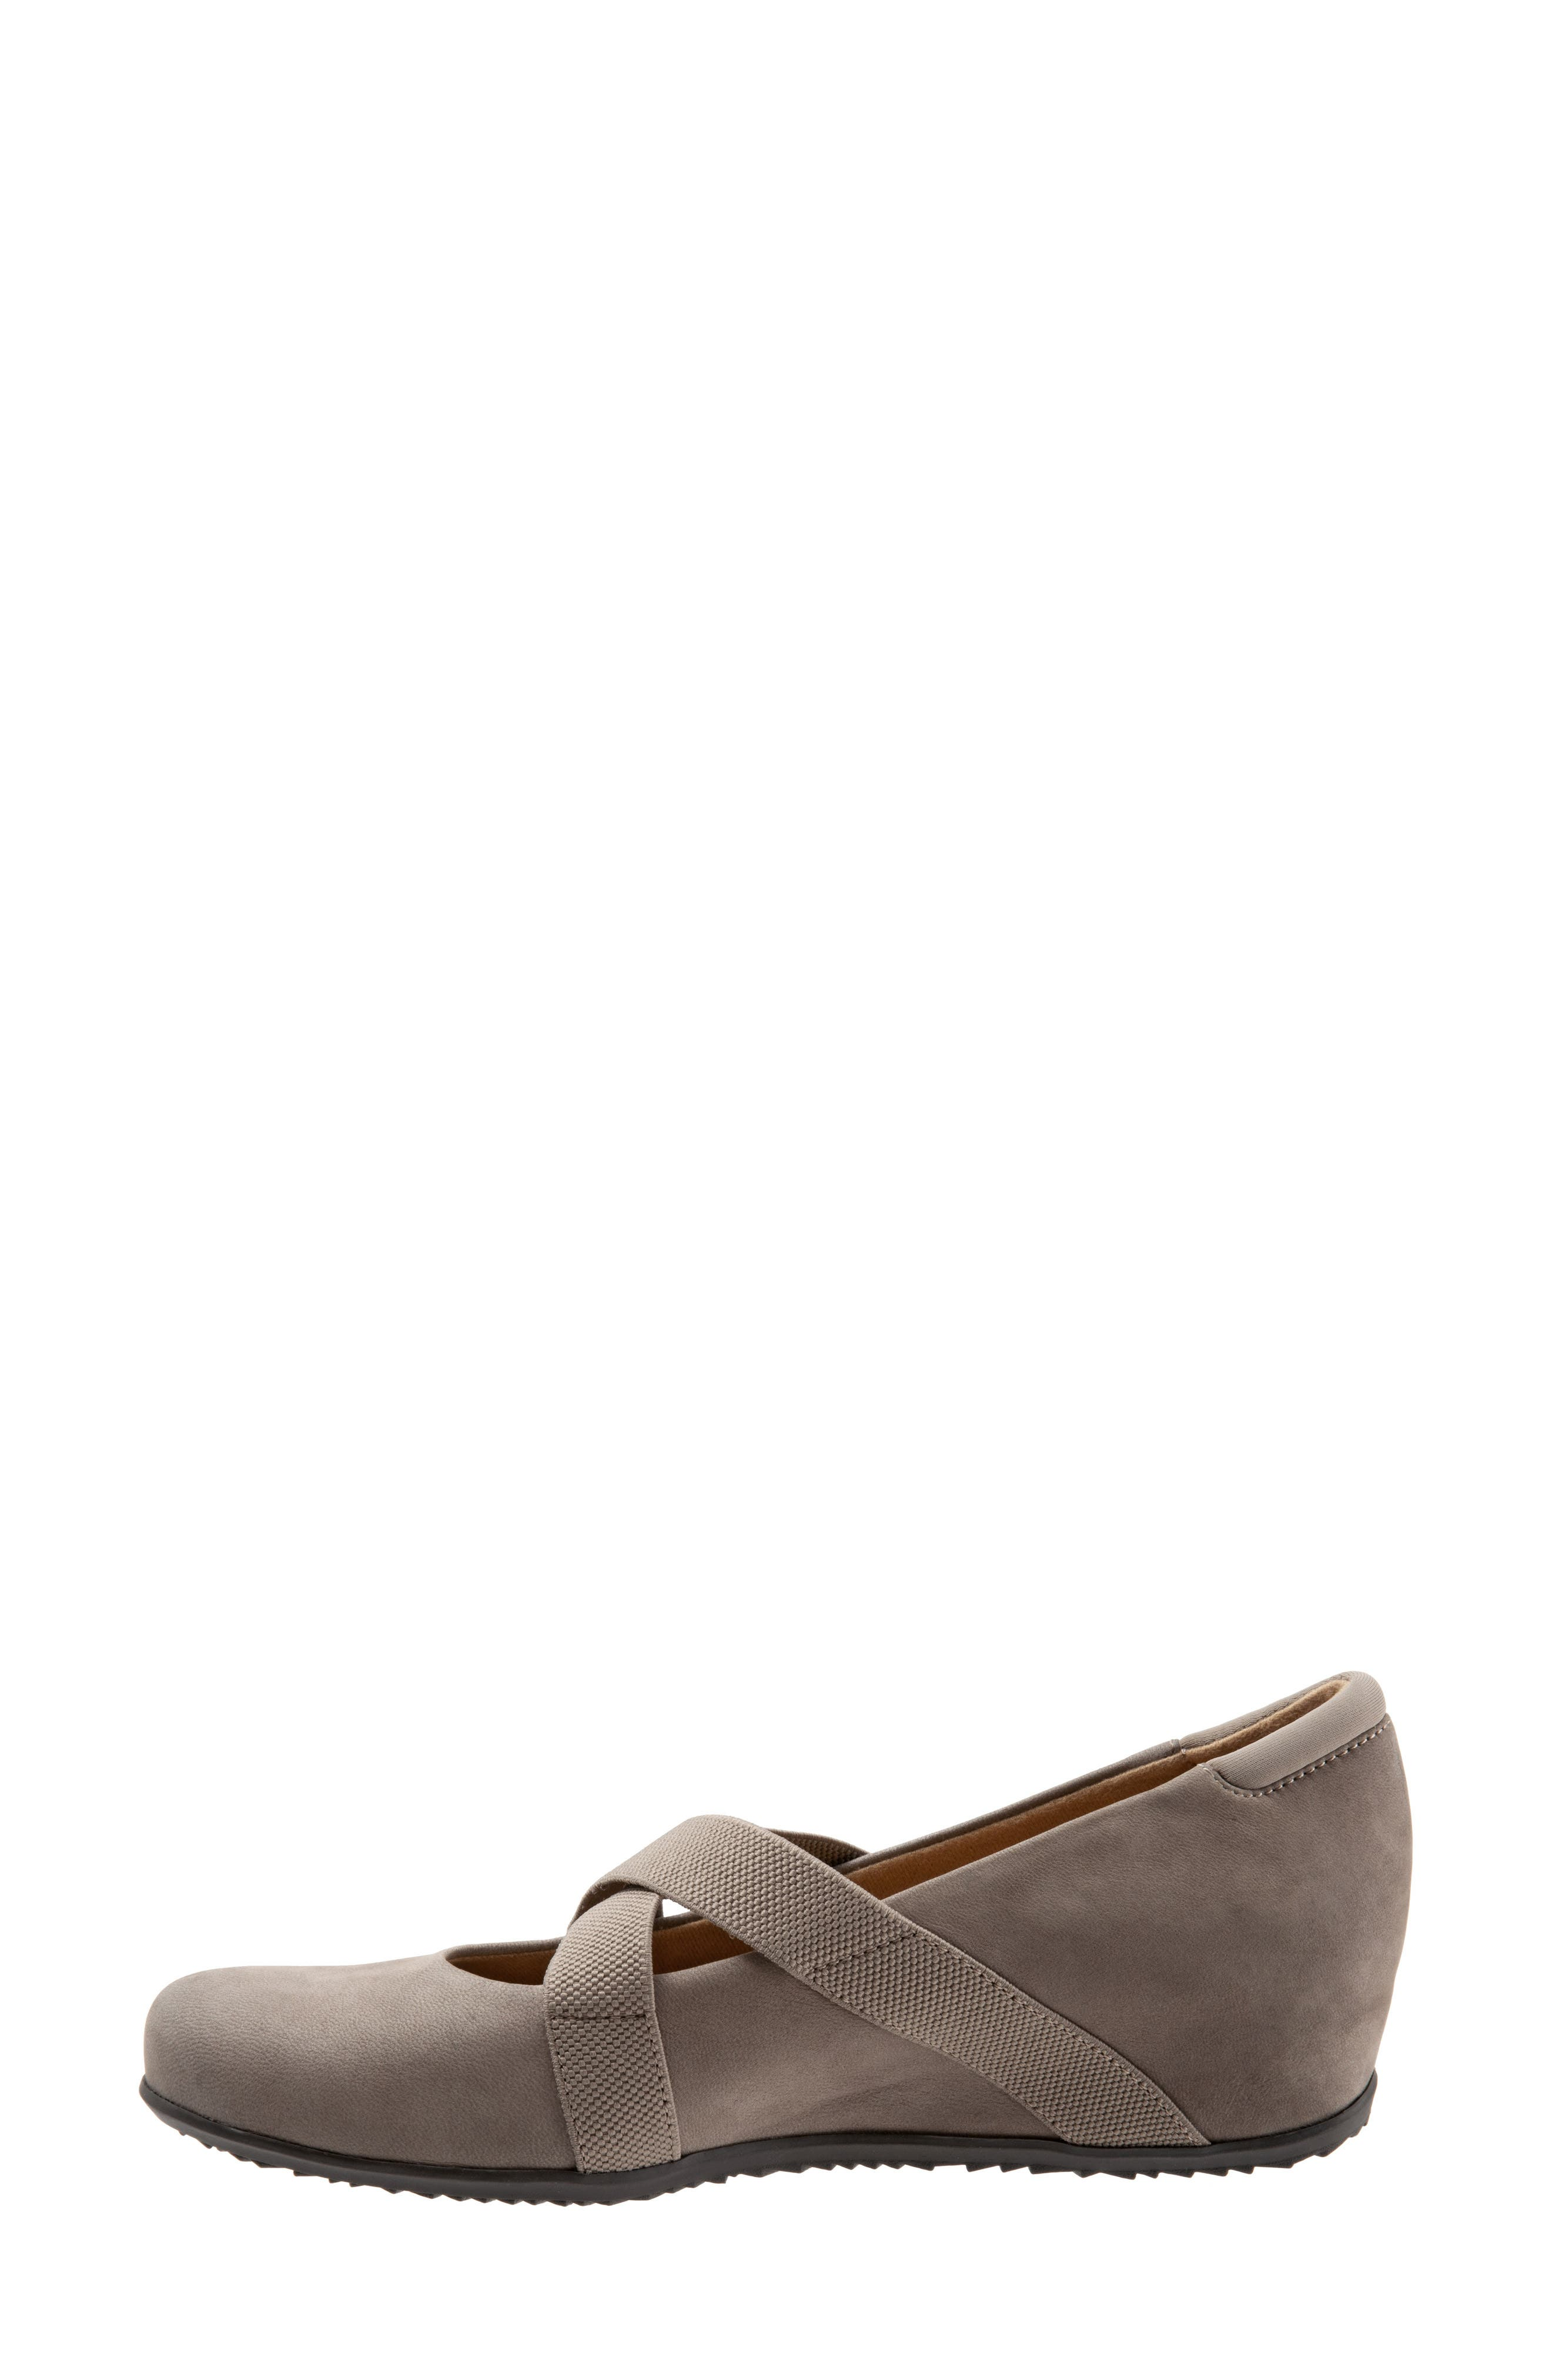 SOFTWALK<SUP>®</SUP>, Waverly Mary Jane Wedge, Alternate thumbnail 9, color, TAUPE LEATHER